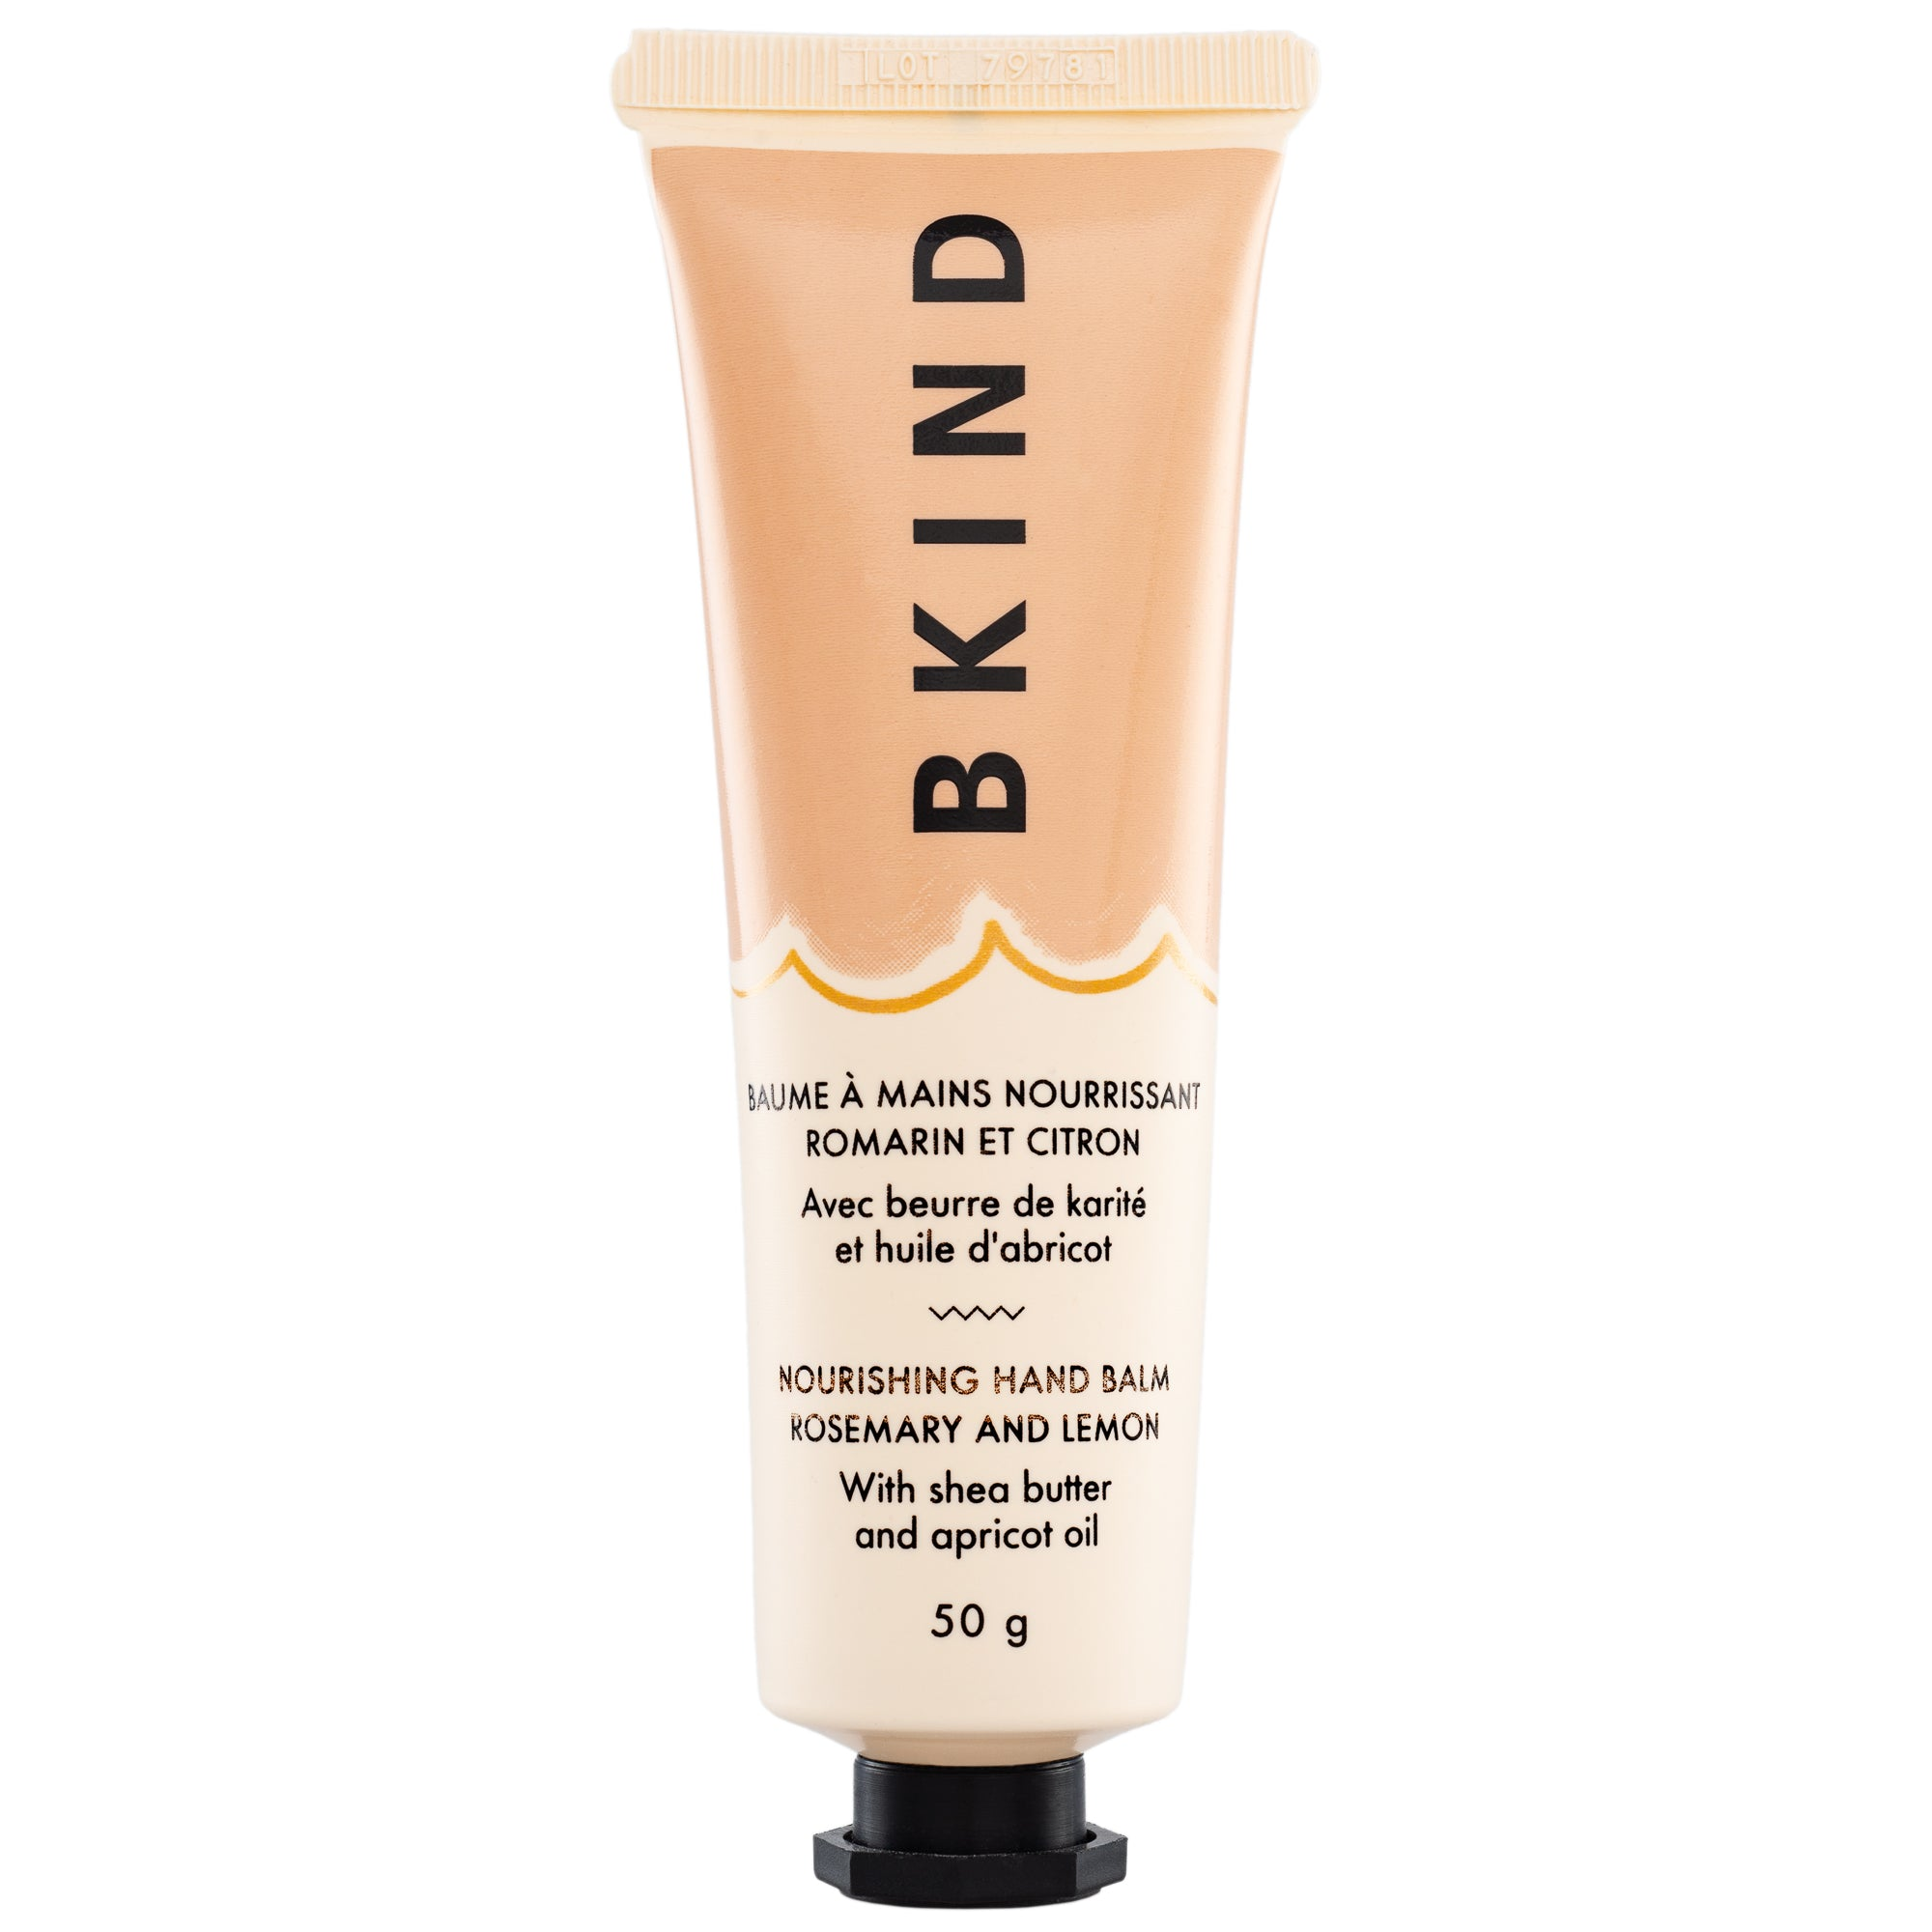 BKIND Nourishing Hand Balm Rosemary and Lemon